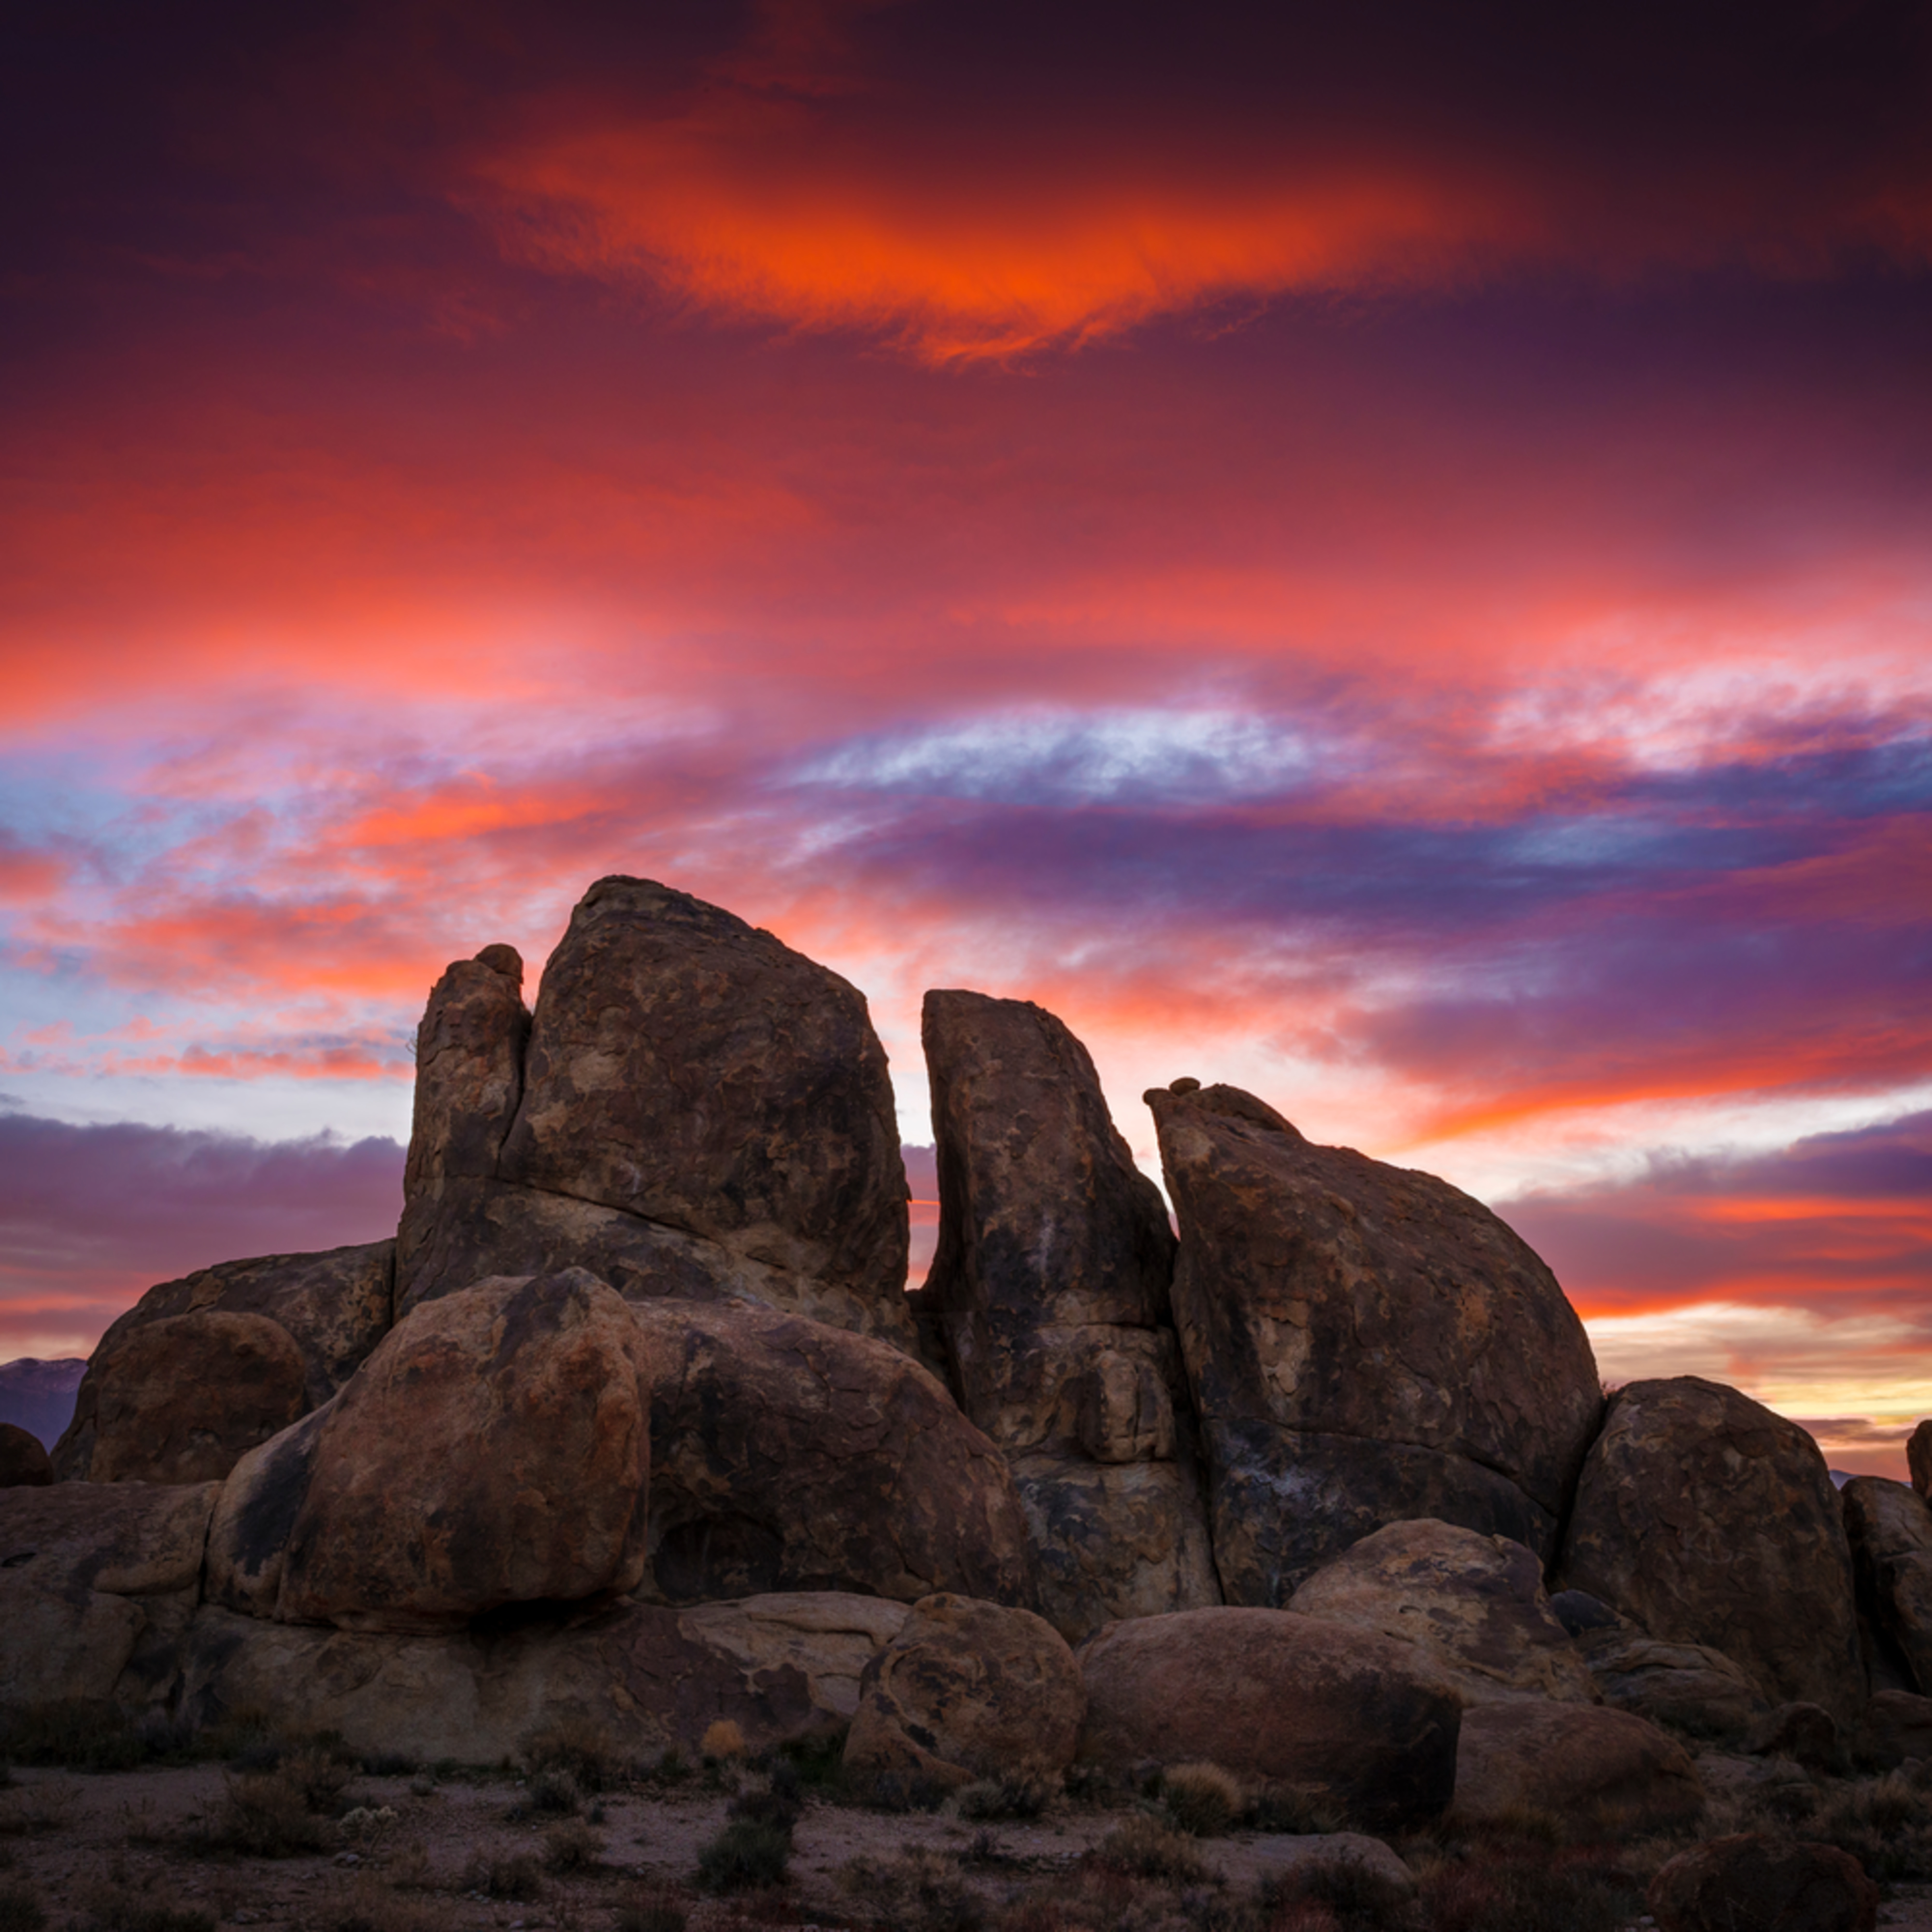 Alabama hills sunrise lbisda